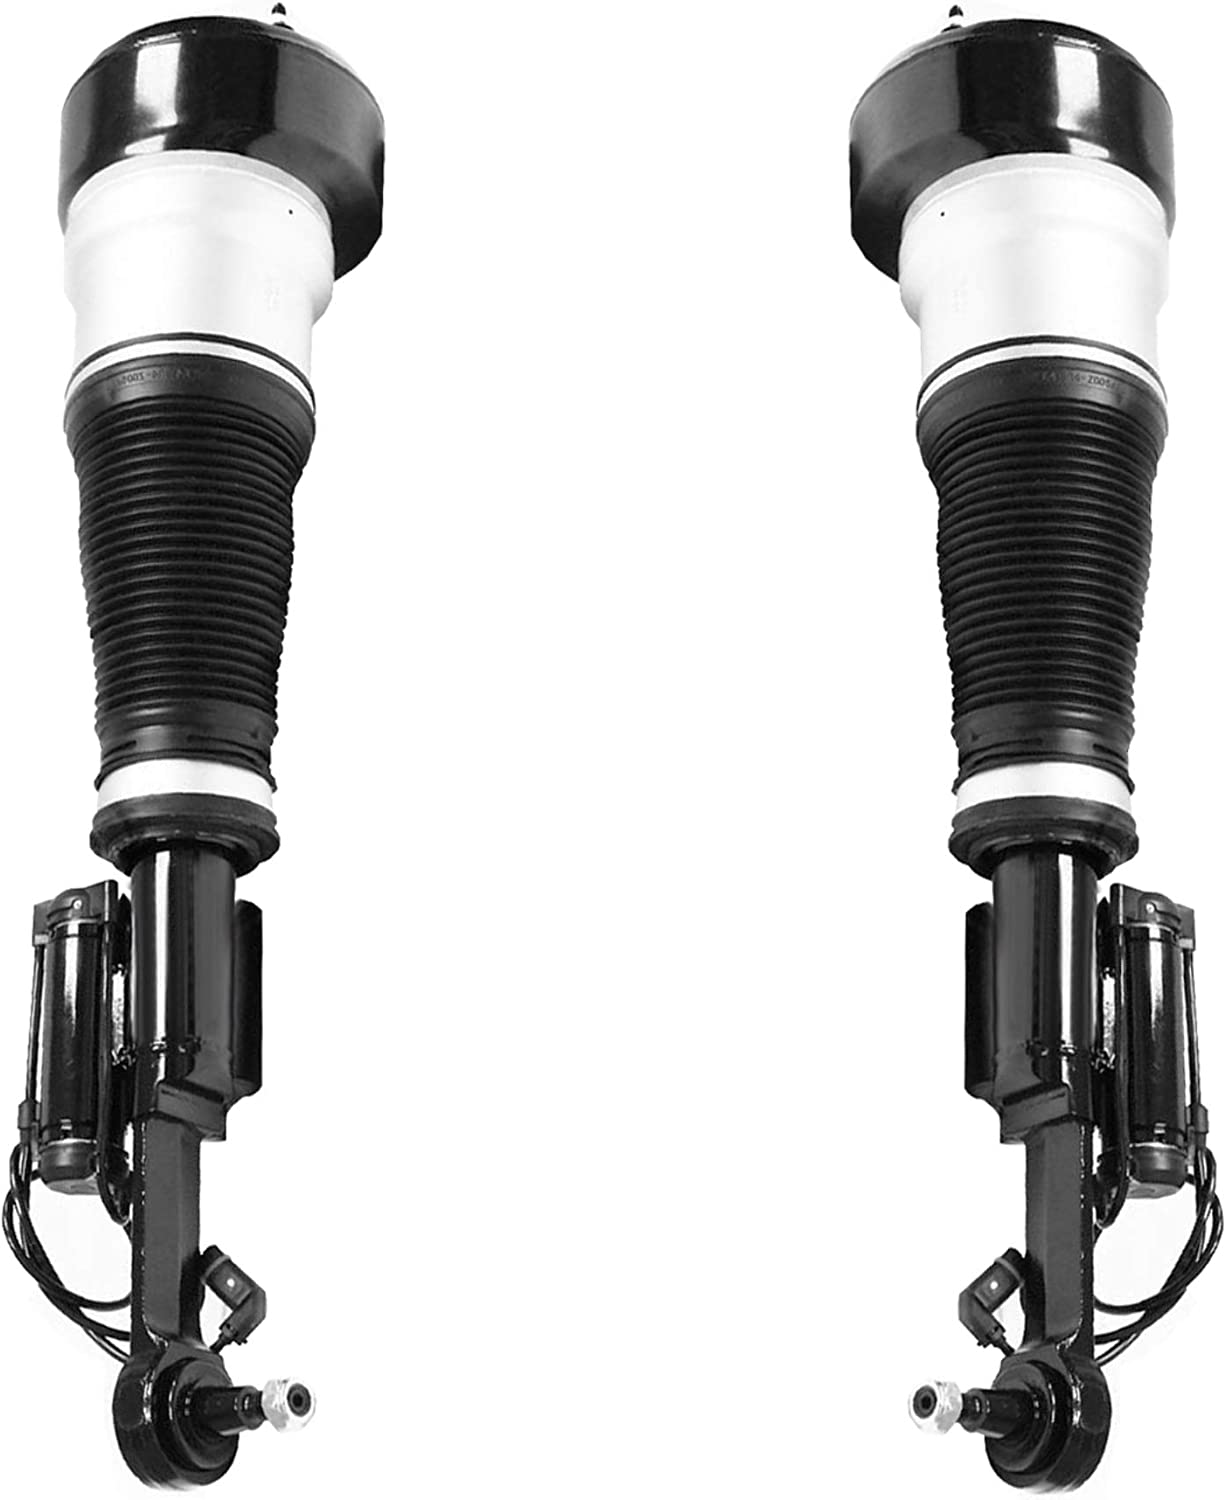 Unity Automotive 2-28-113701-28-113702 Front Replacement Electronic Air Strut Assembly Kit Fits 2009-2013 Mercedes-Benz CL550